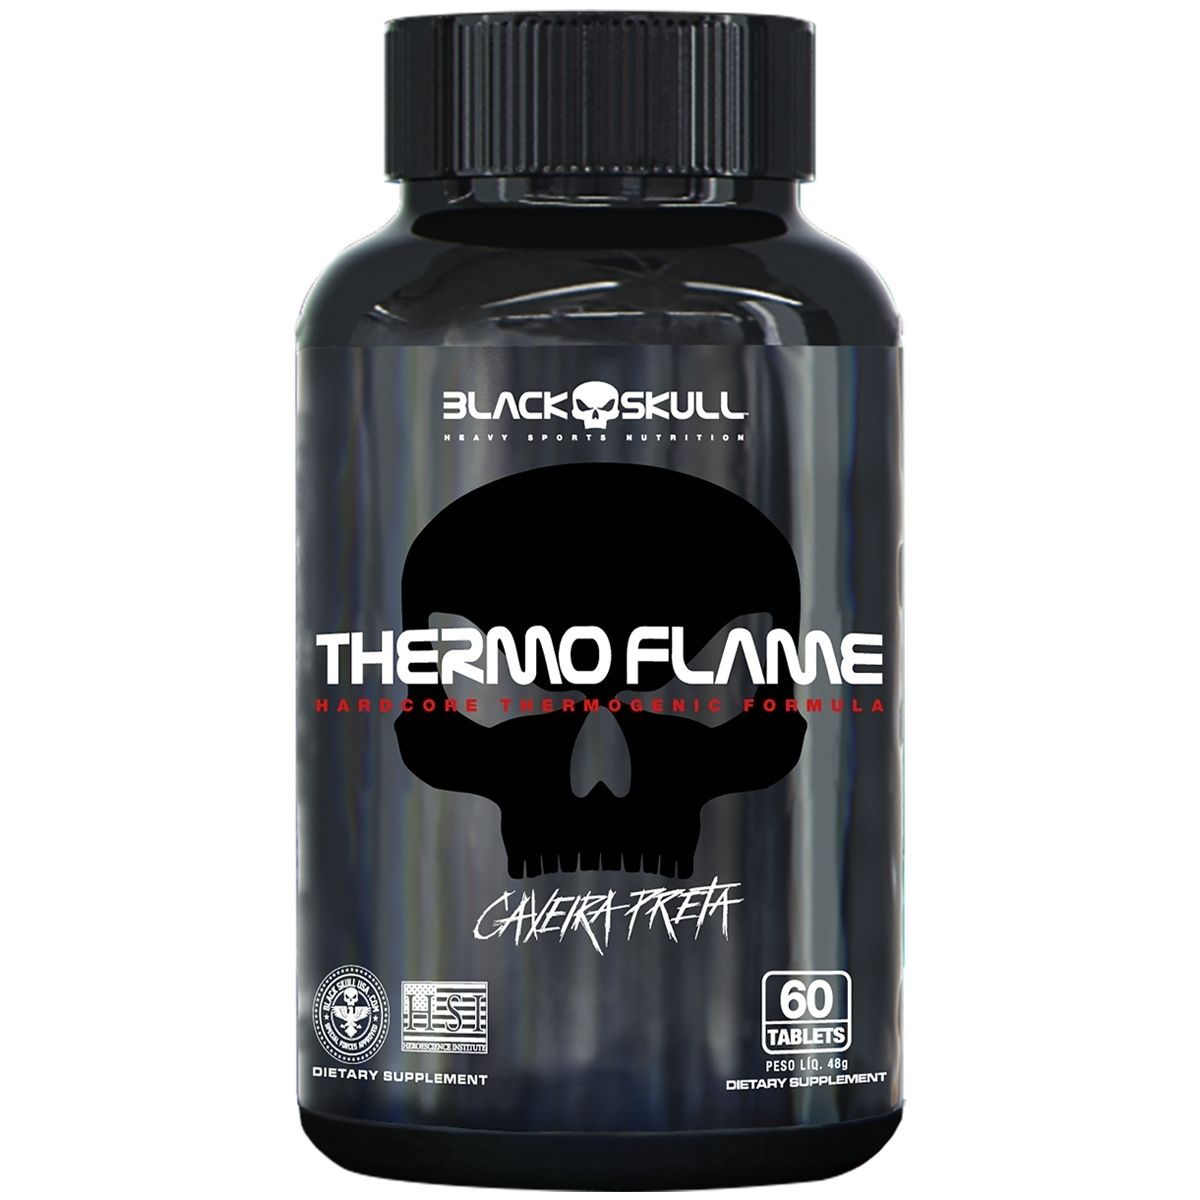 THERMO FLAME 60 TABLETES – Black Skull